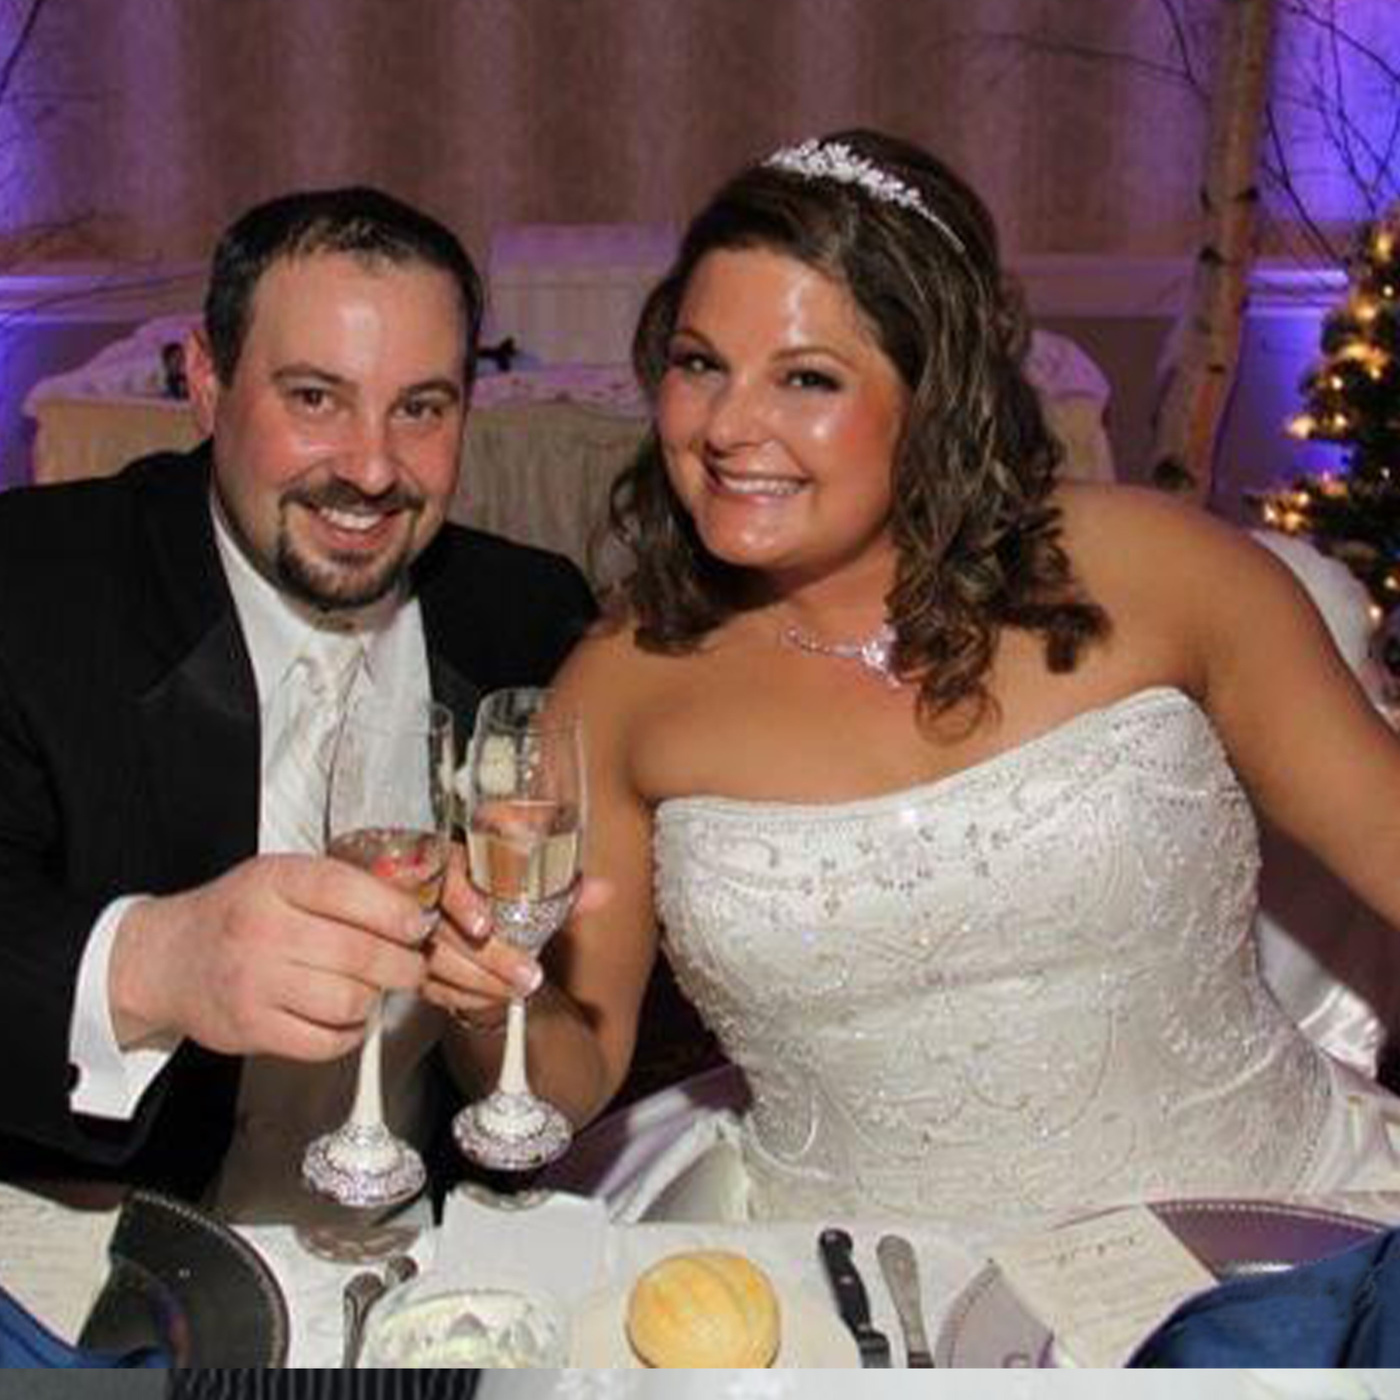 Choosing Your Reflection: The Curvy Bride - Michelle Files